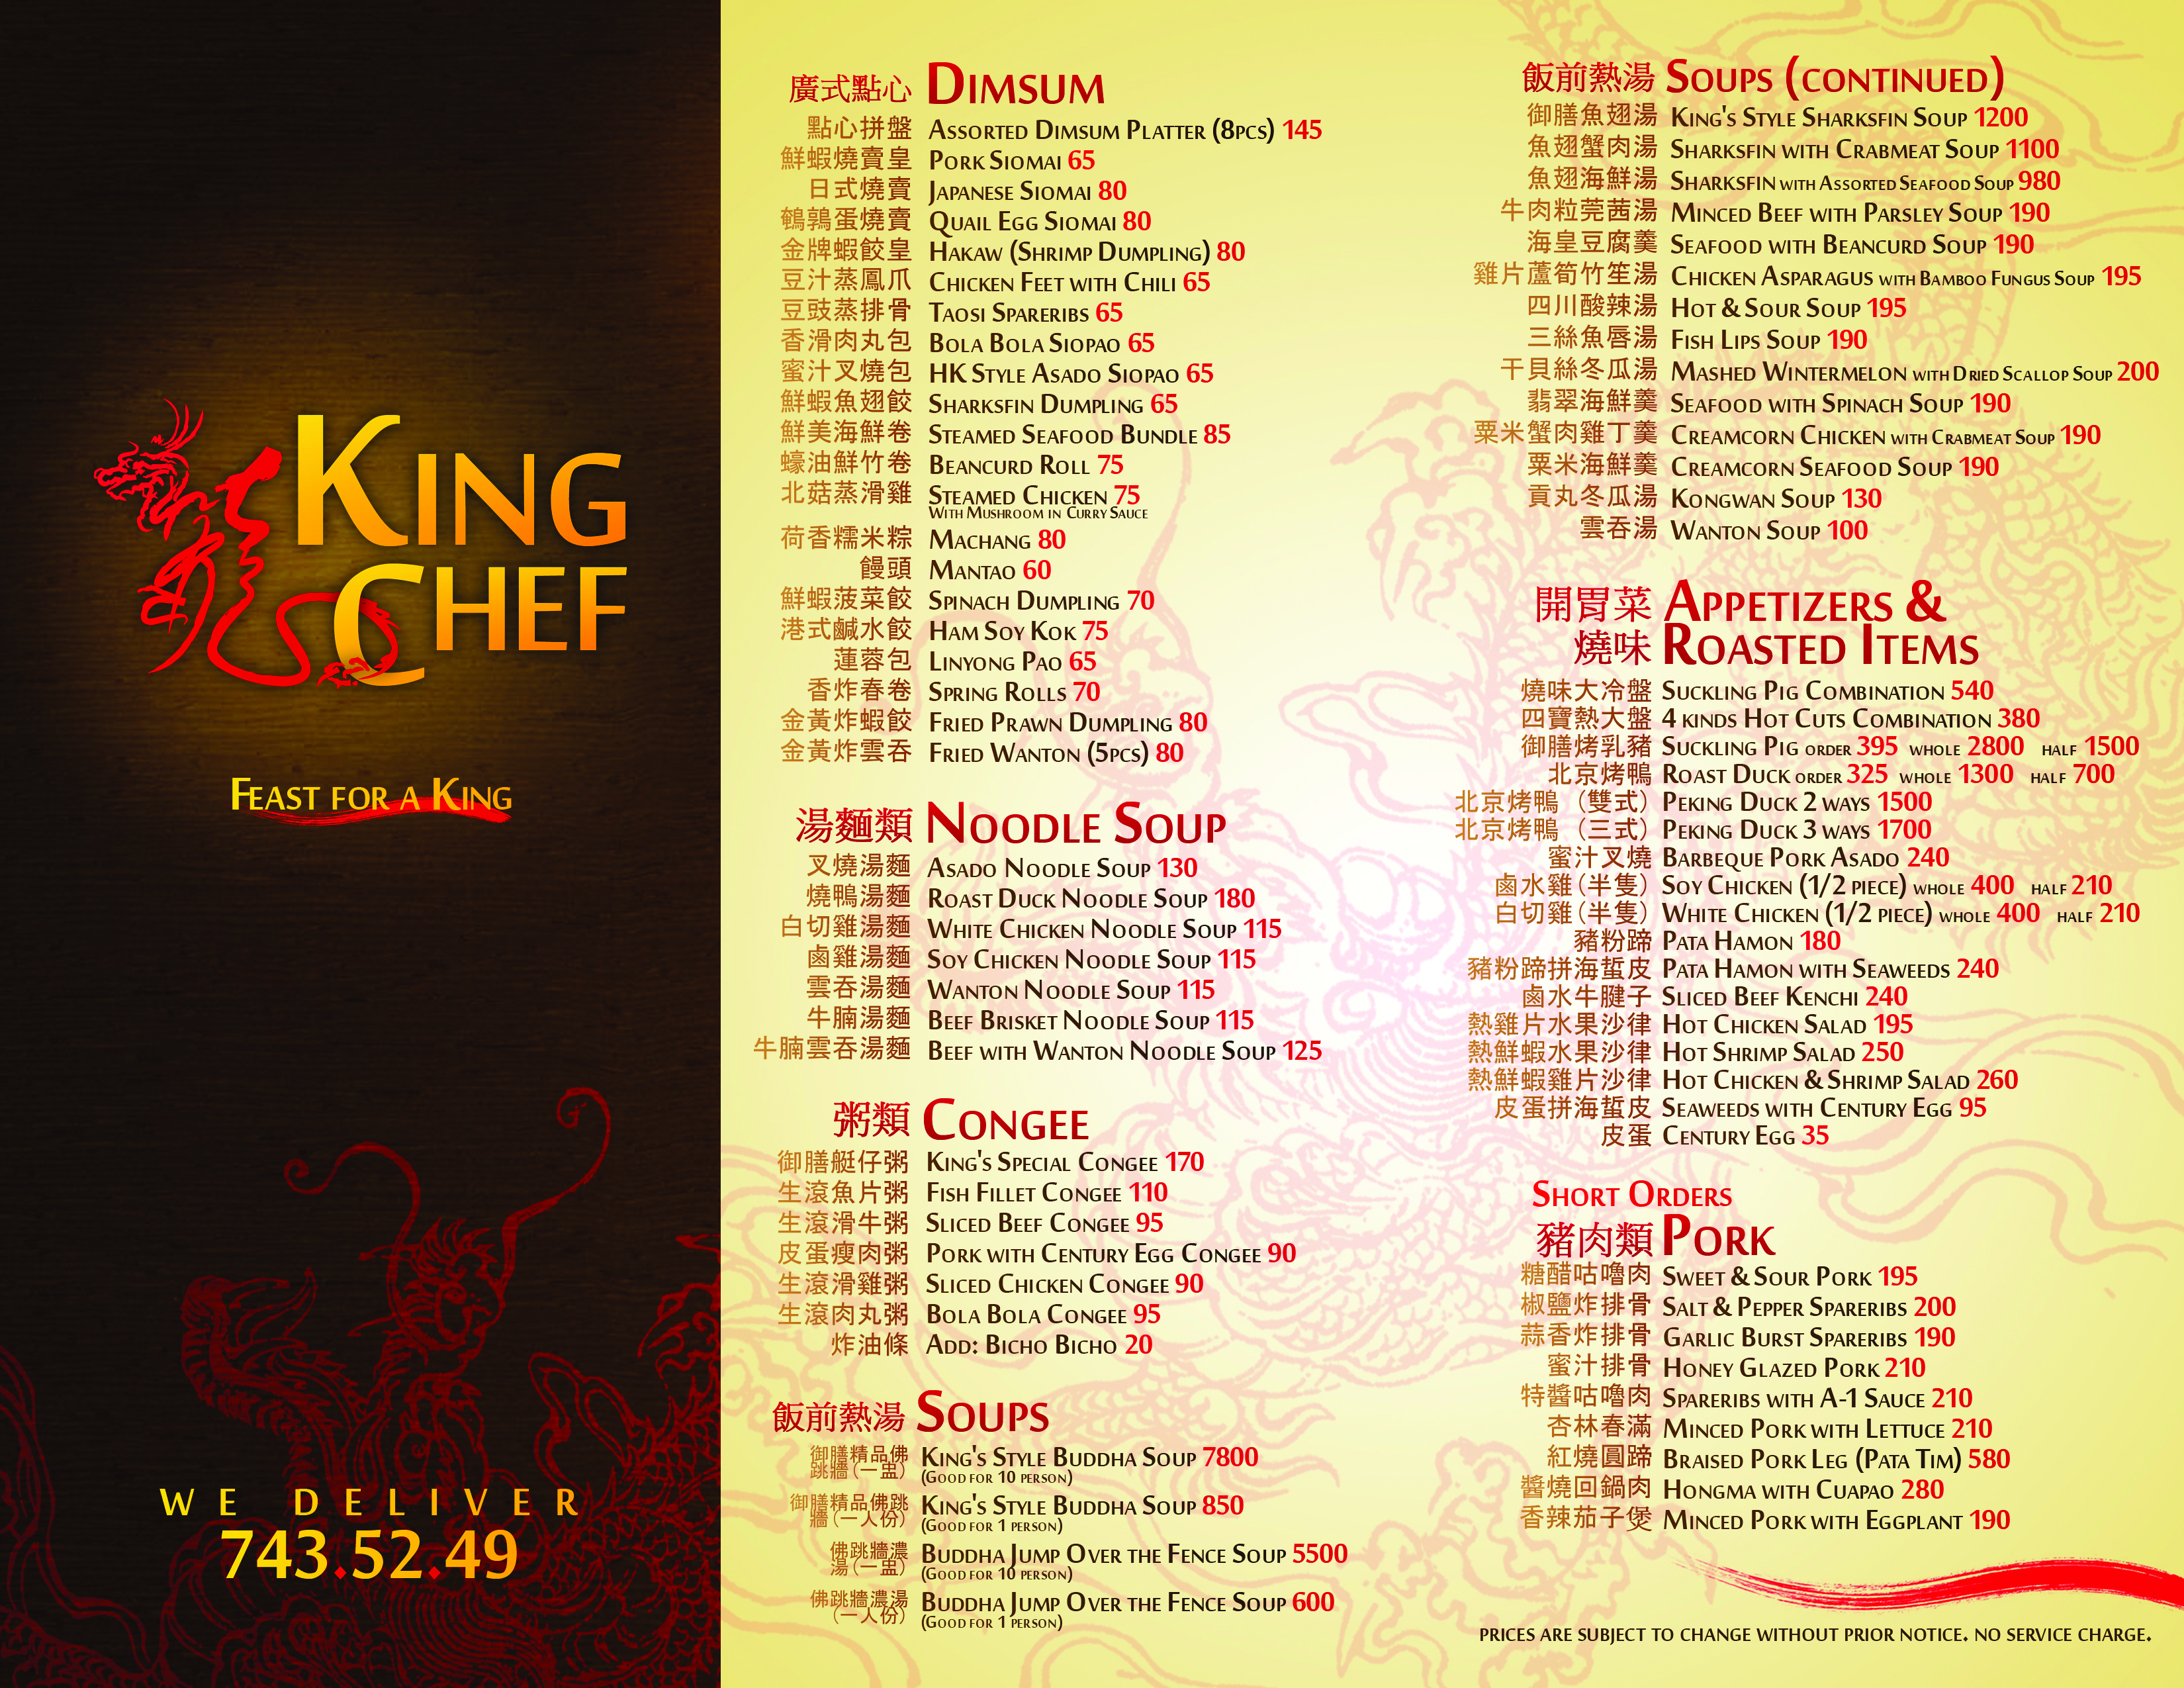 King chef feast for a king beyond toxicity for King s fish house menu